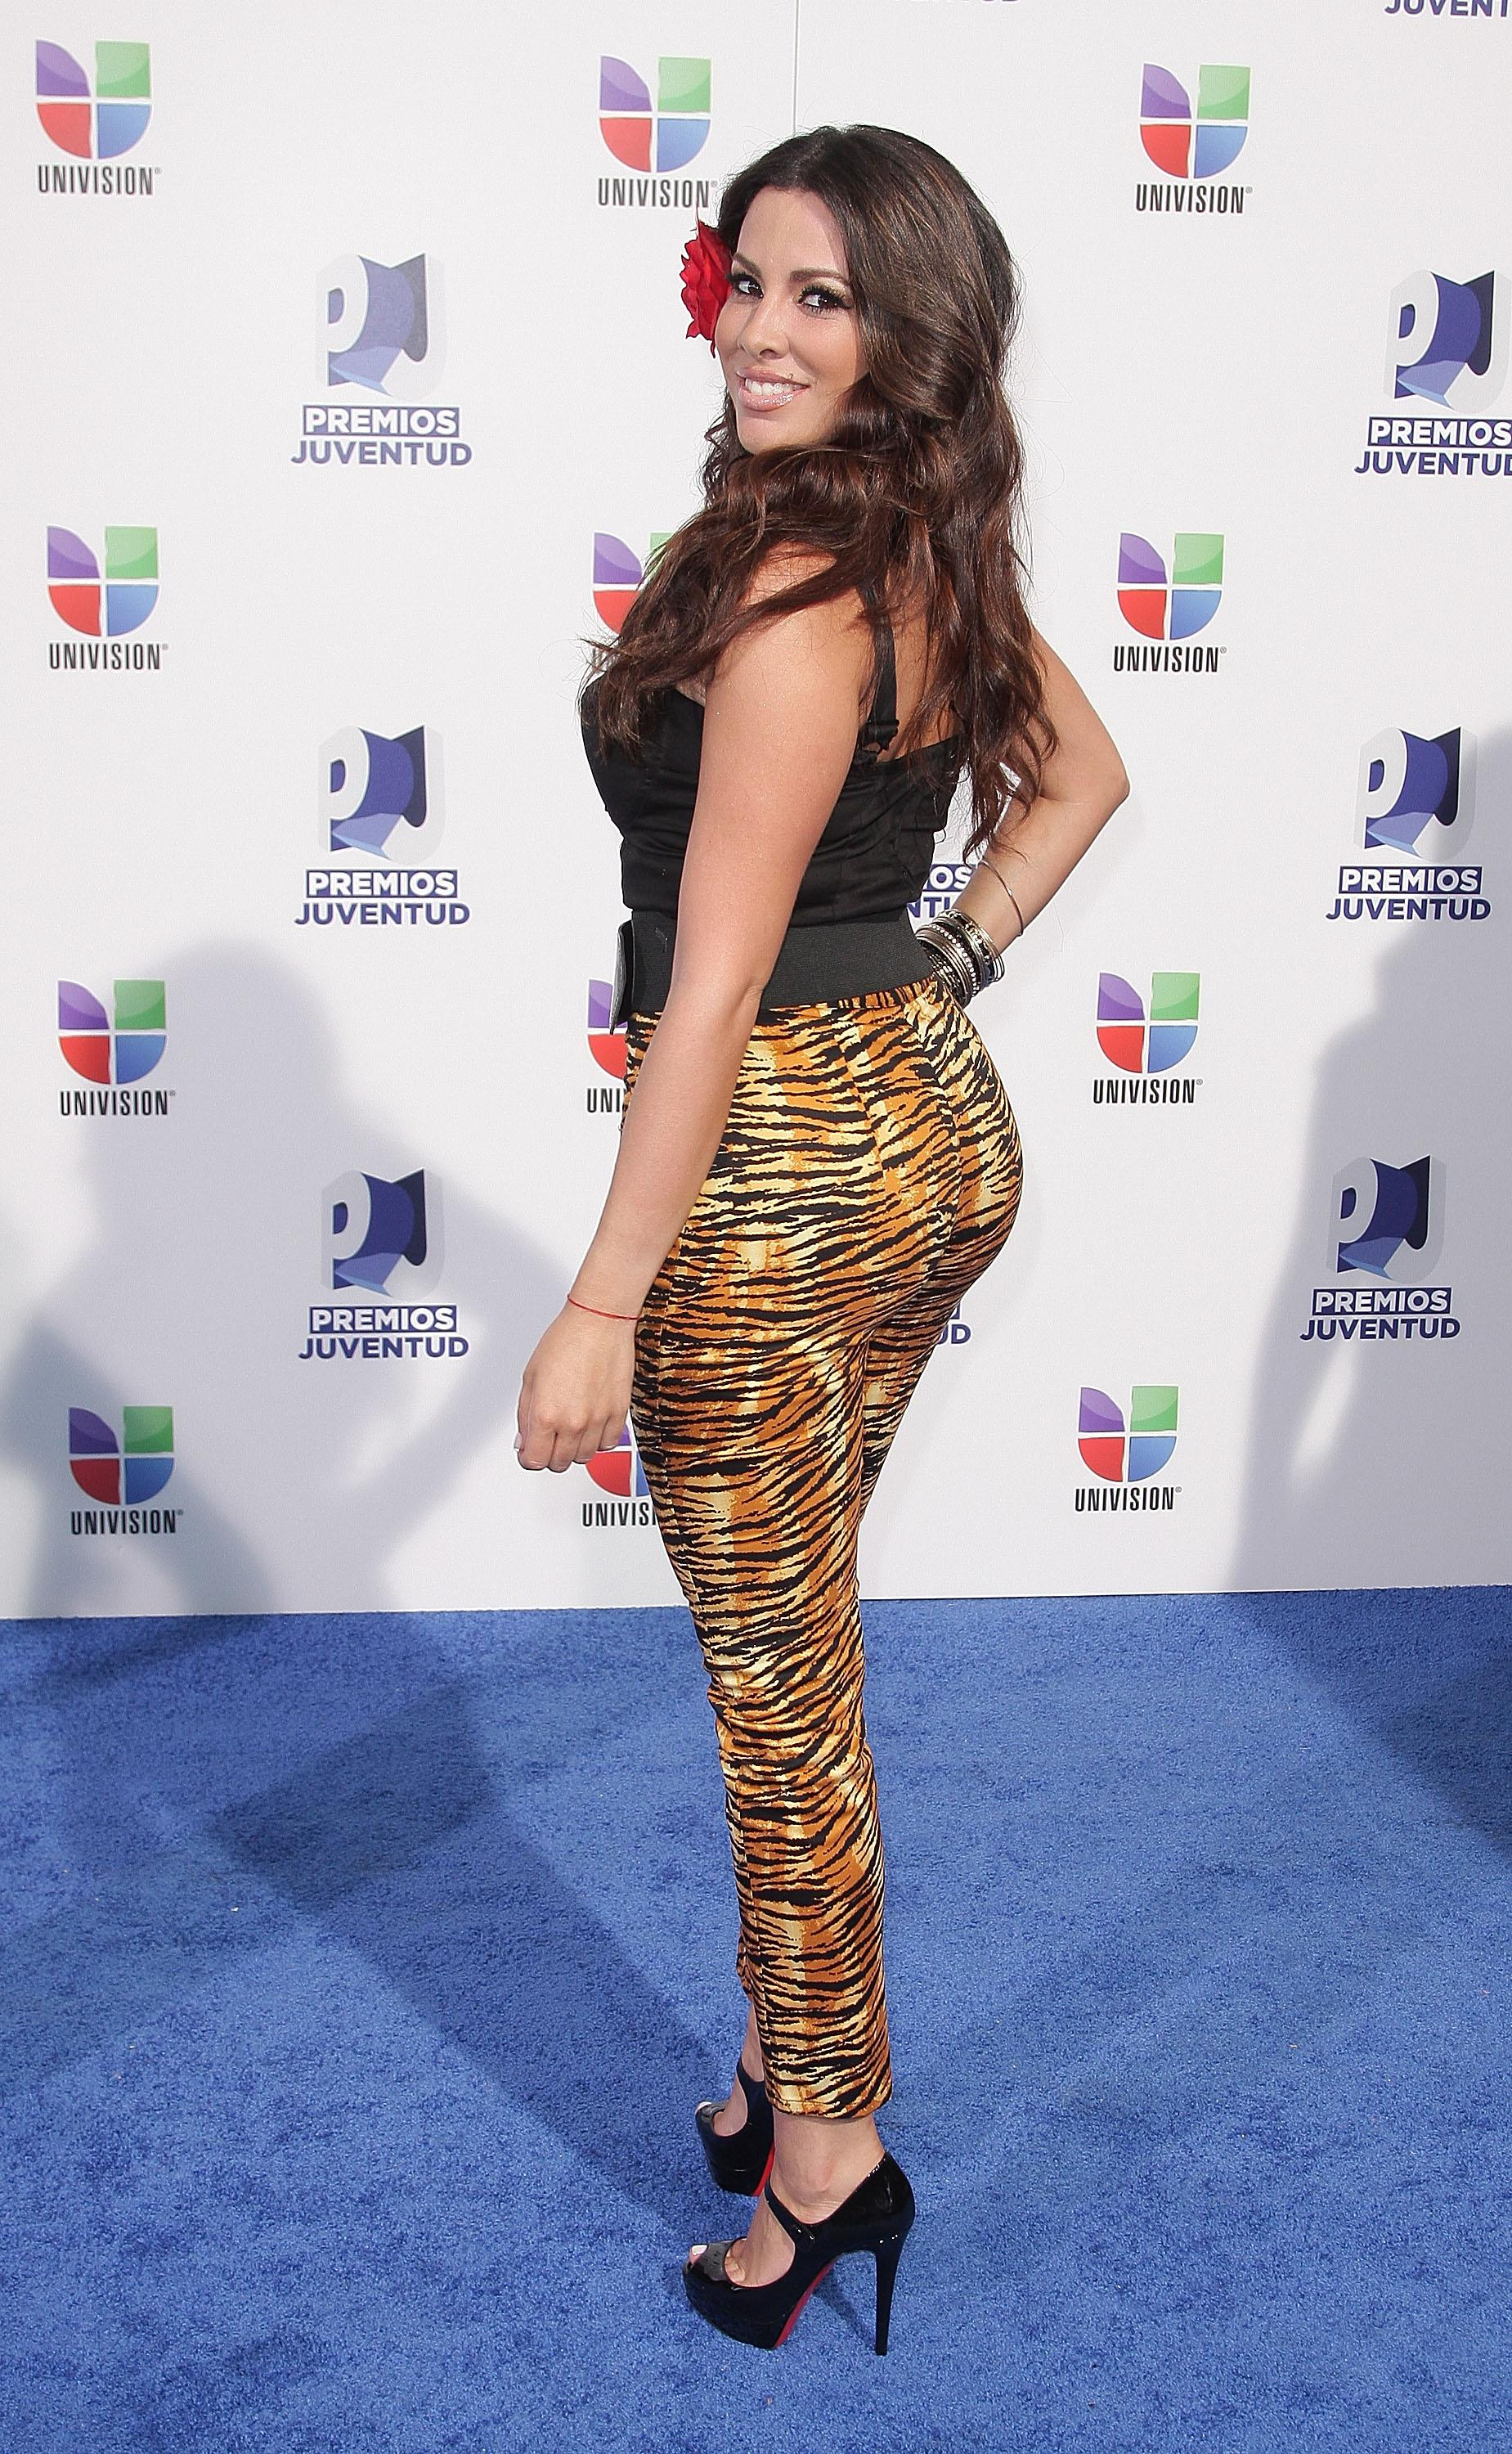 Univisions 8th Annual Premios Juventud Awards - Arrivals